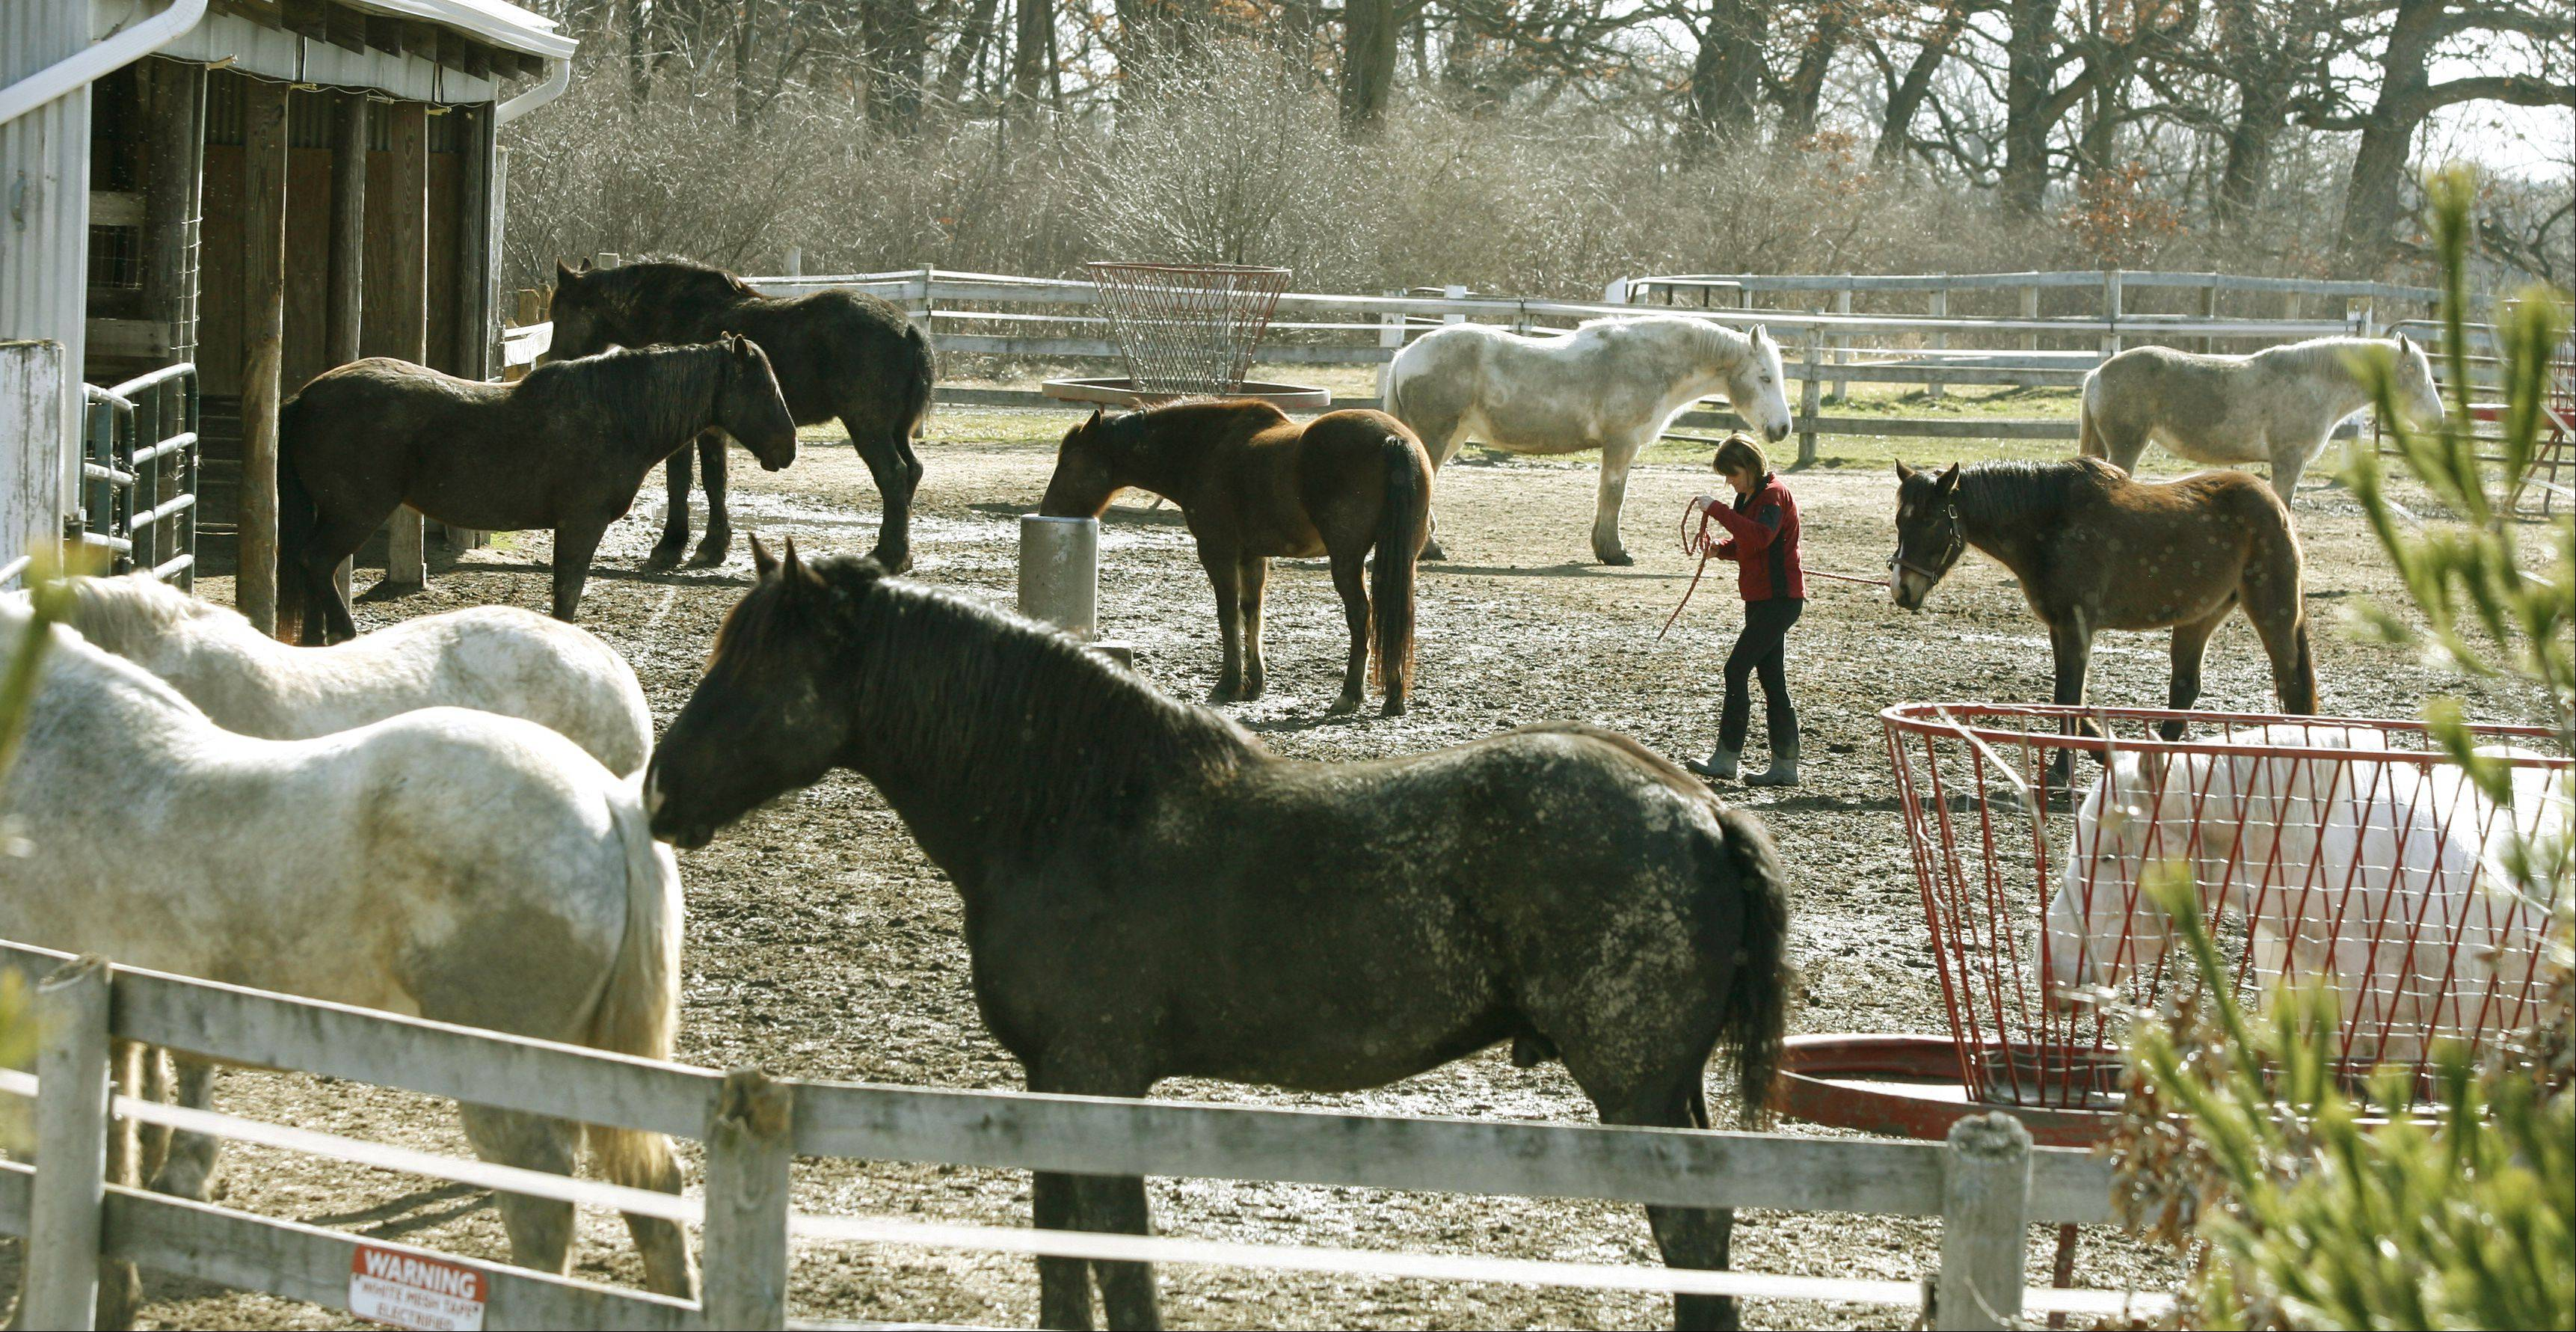 More than 30 current and former volunteers sent a letter to the DuPage Forest Preserve District in November alleging mistreatment of some horses at Danada, among other complaints. In response, the district launched an assessment of the center's operations and will start presenting its findings on March 20.